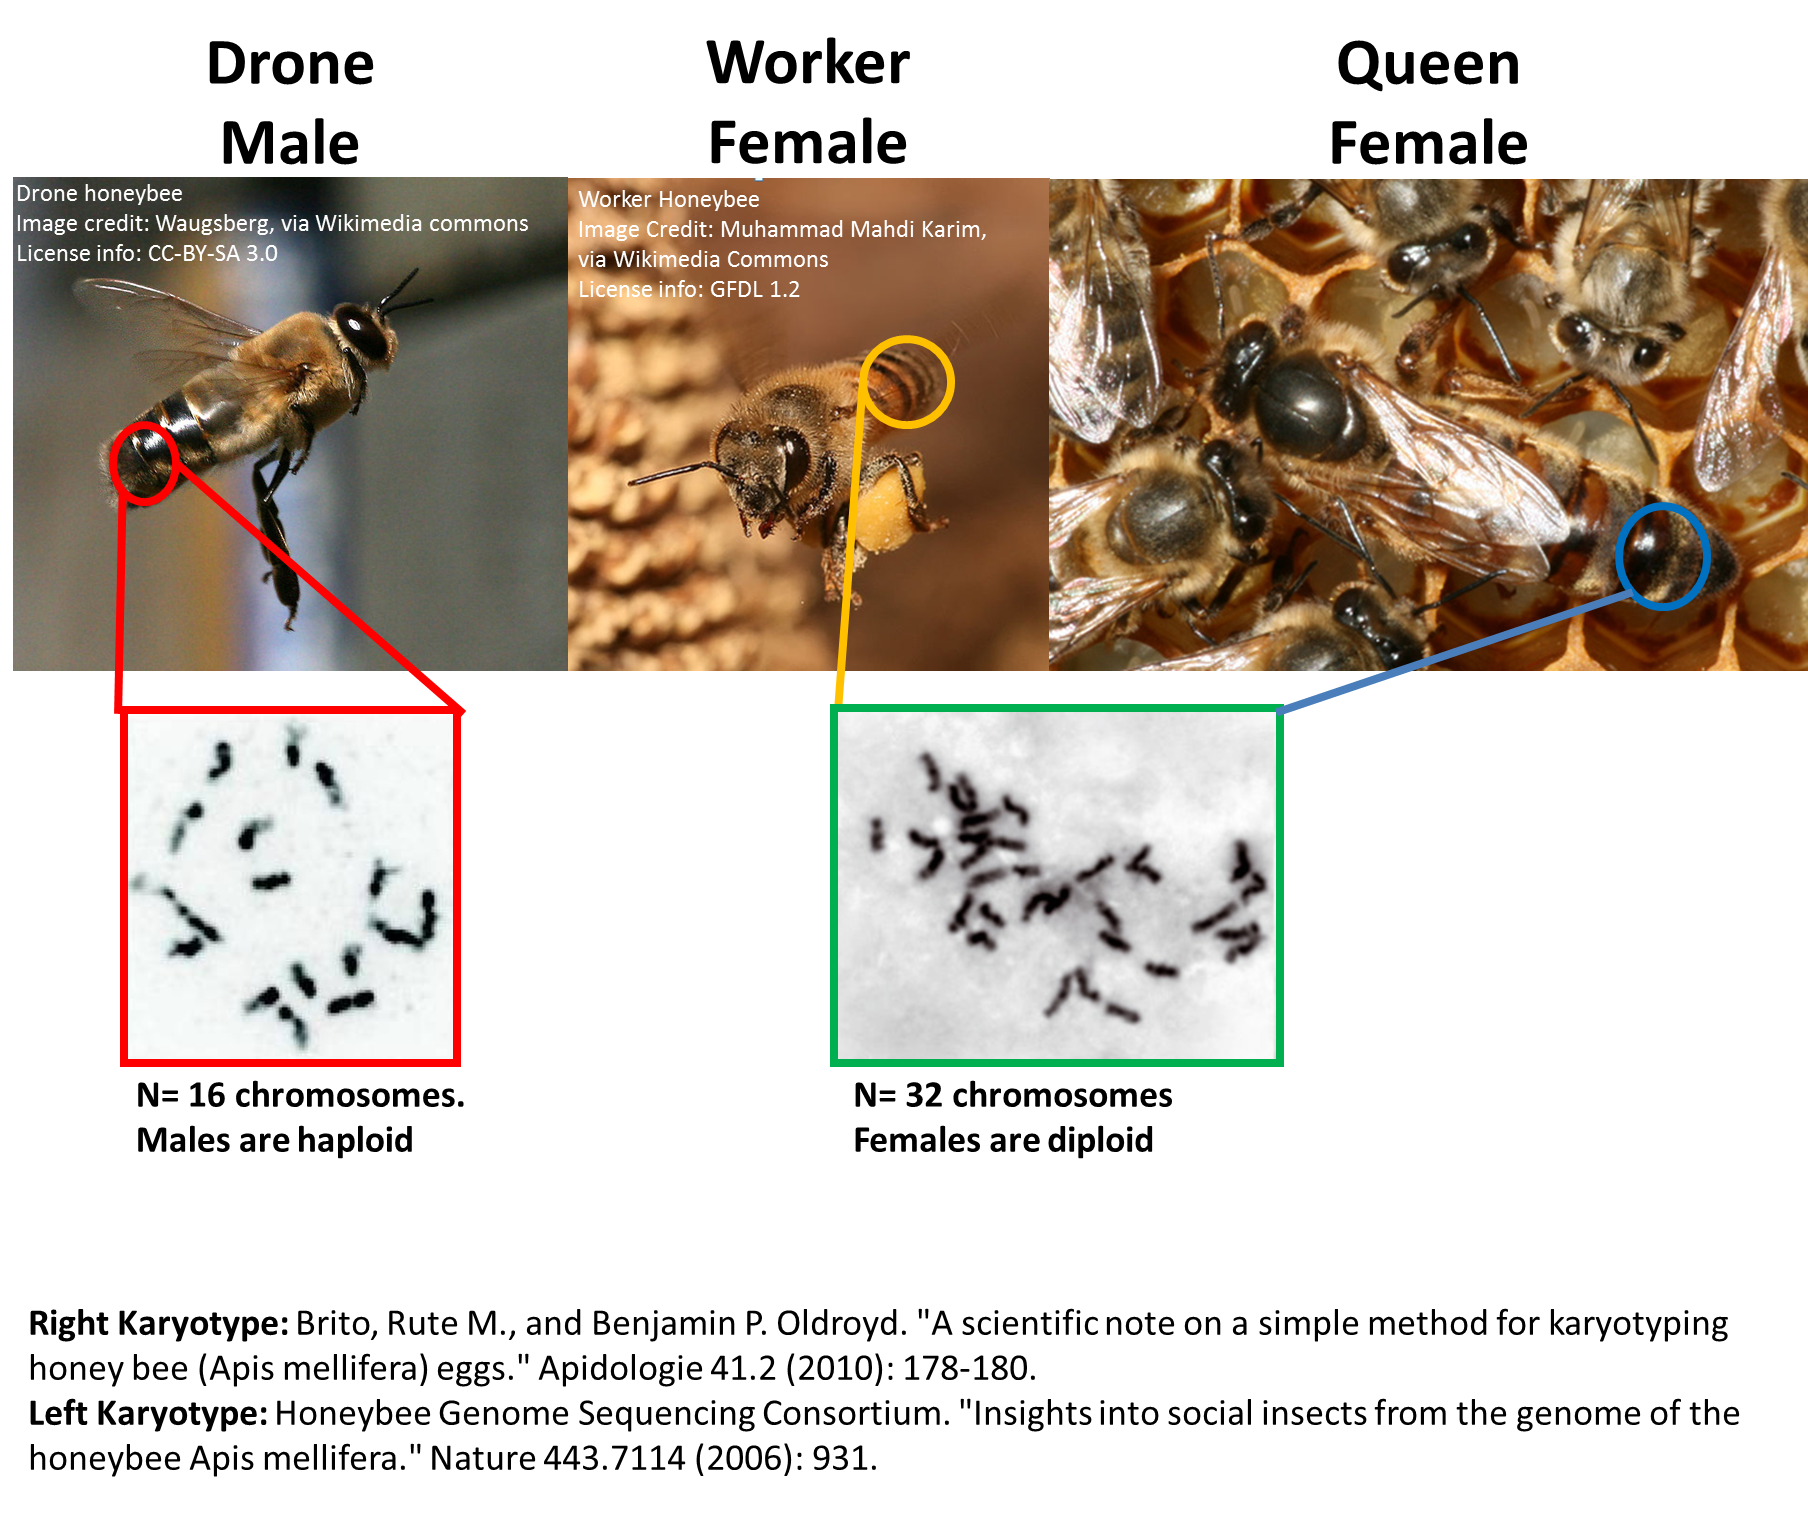 different types of drones with Honeybee Ge Ics How Do They Work on Dme Drawing Emotions Expressions furthermore Retro Plane Business Jet Passenger Plane And Military Drone 123494 Vector Clipart as well File RAN squirrel helicopter at melb GP 08 in addition Top Avec Soutient Gorge Integre in addition Number Of Grants Per Investigator.